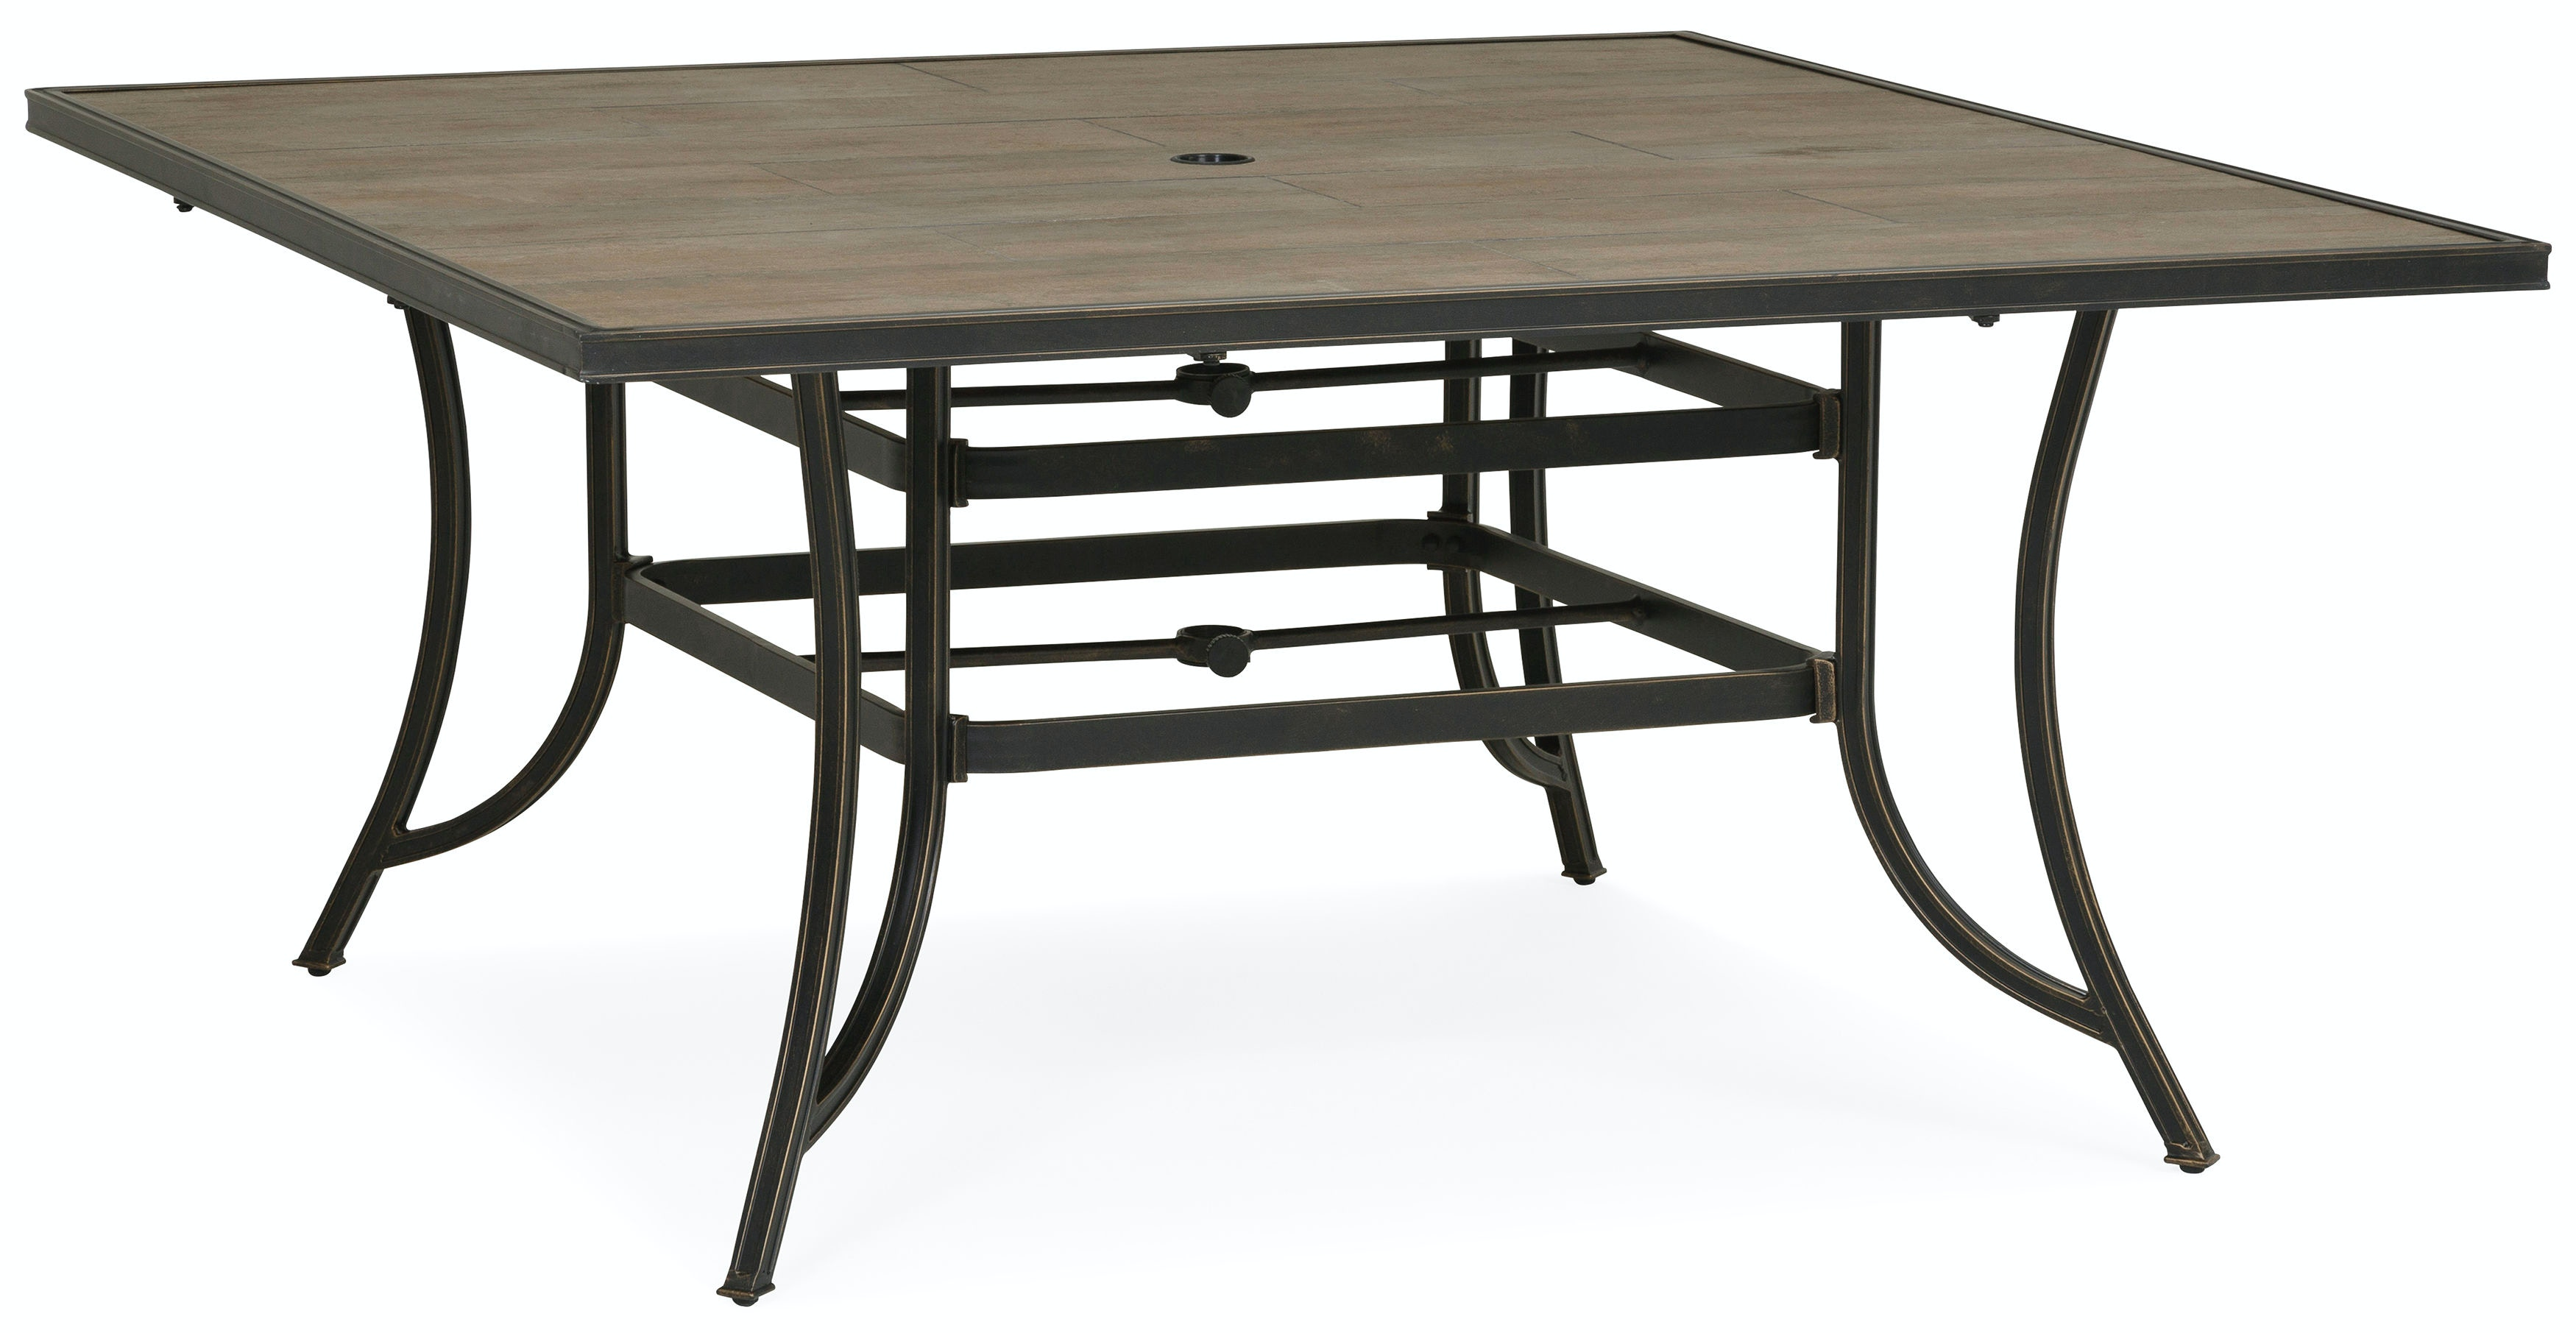 Sonora Outdoor Square Dining Table   TOBACCO TILE ST:476675